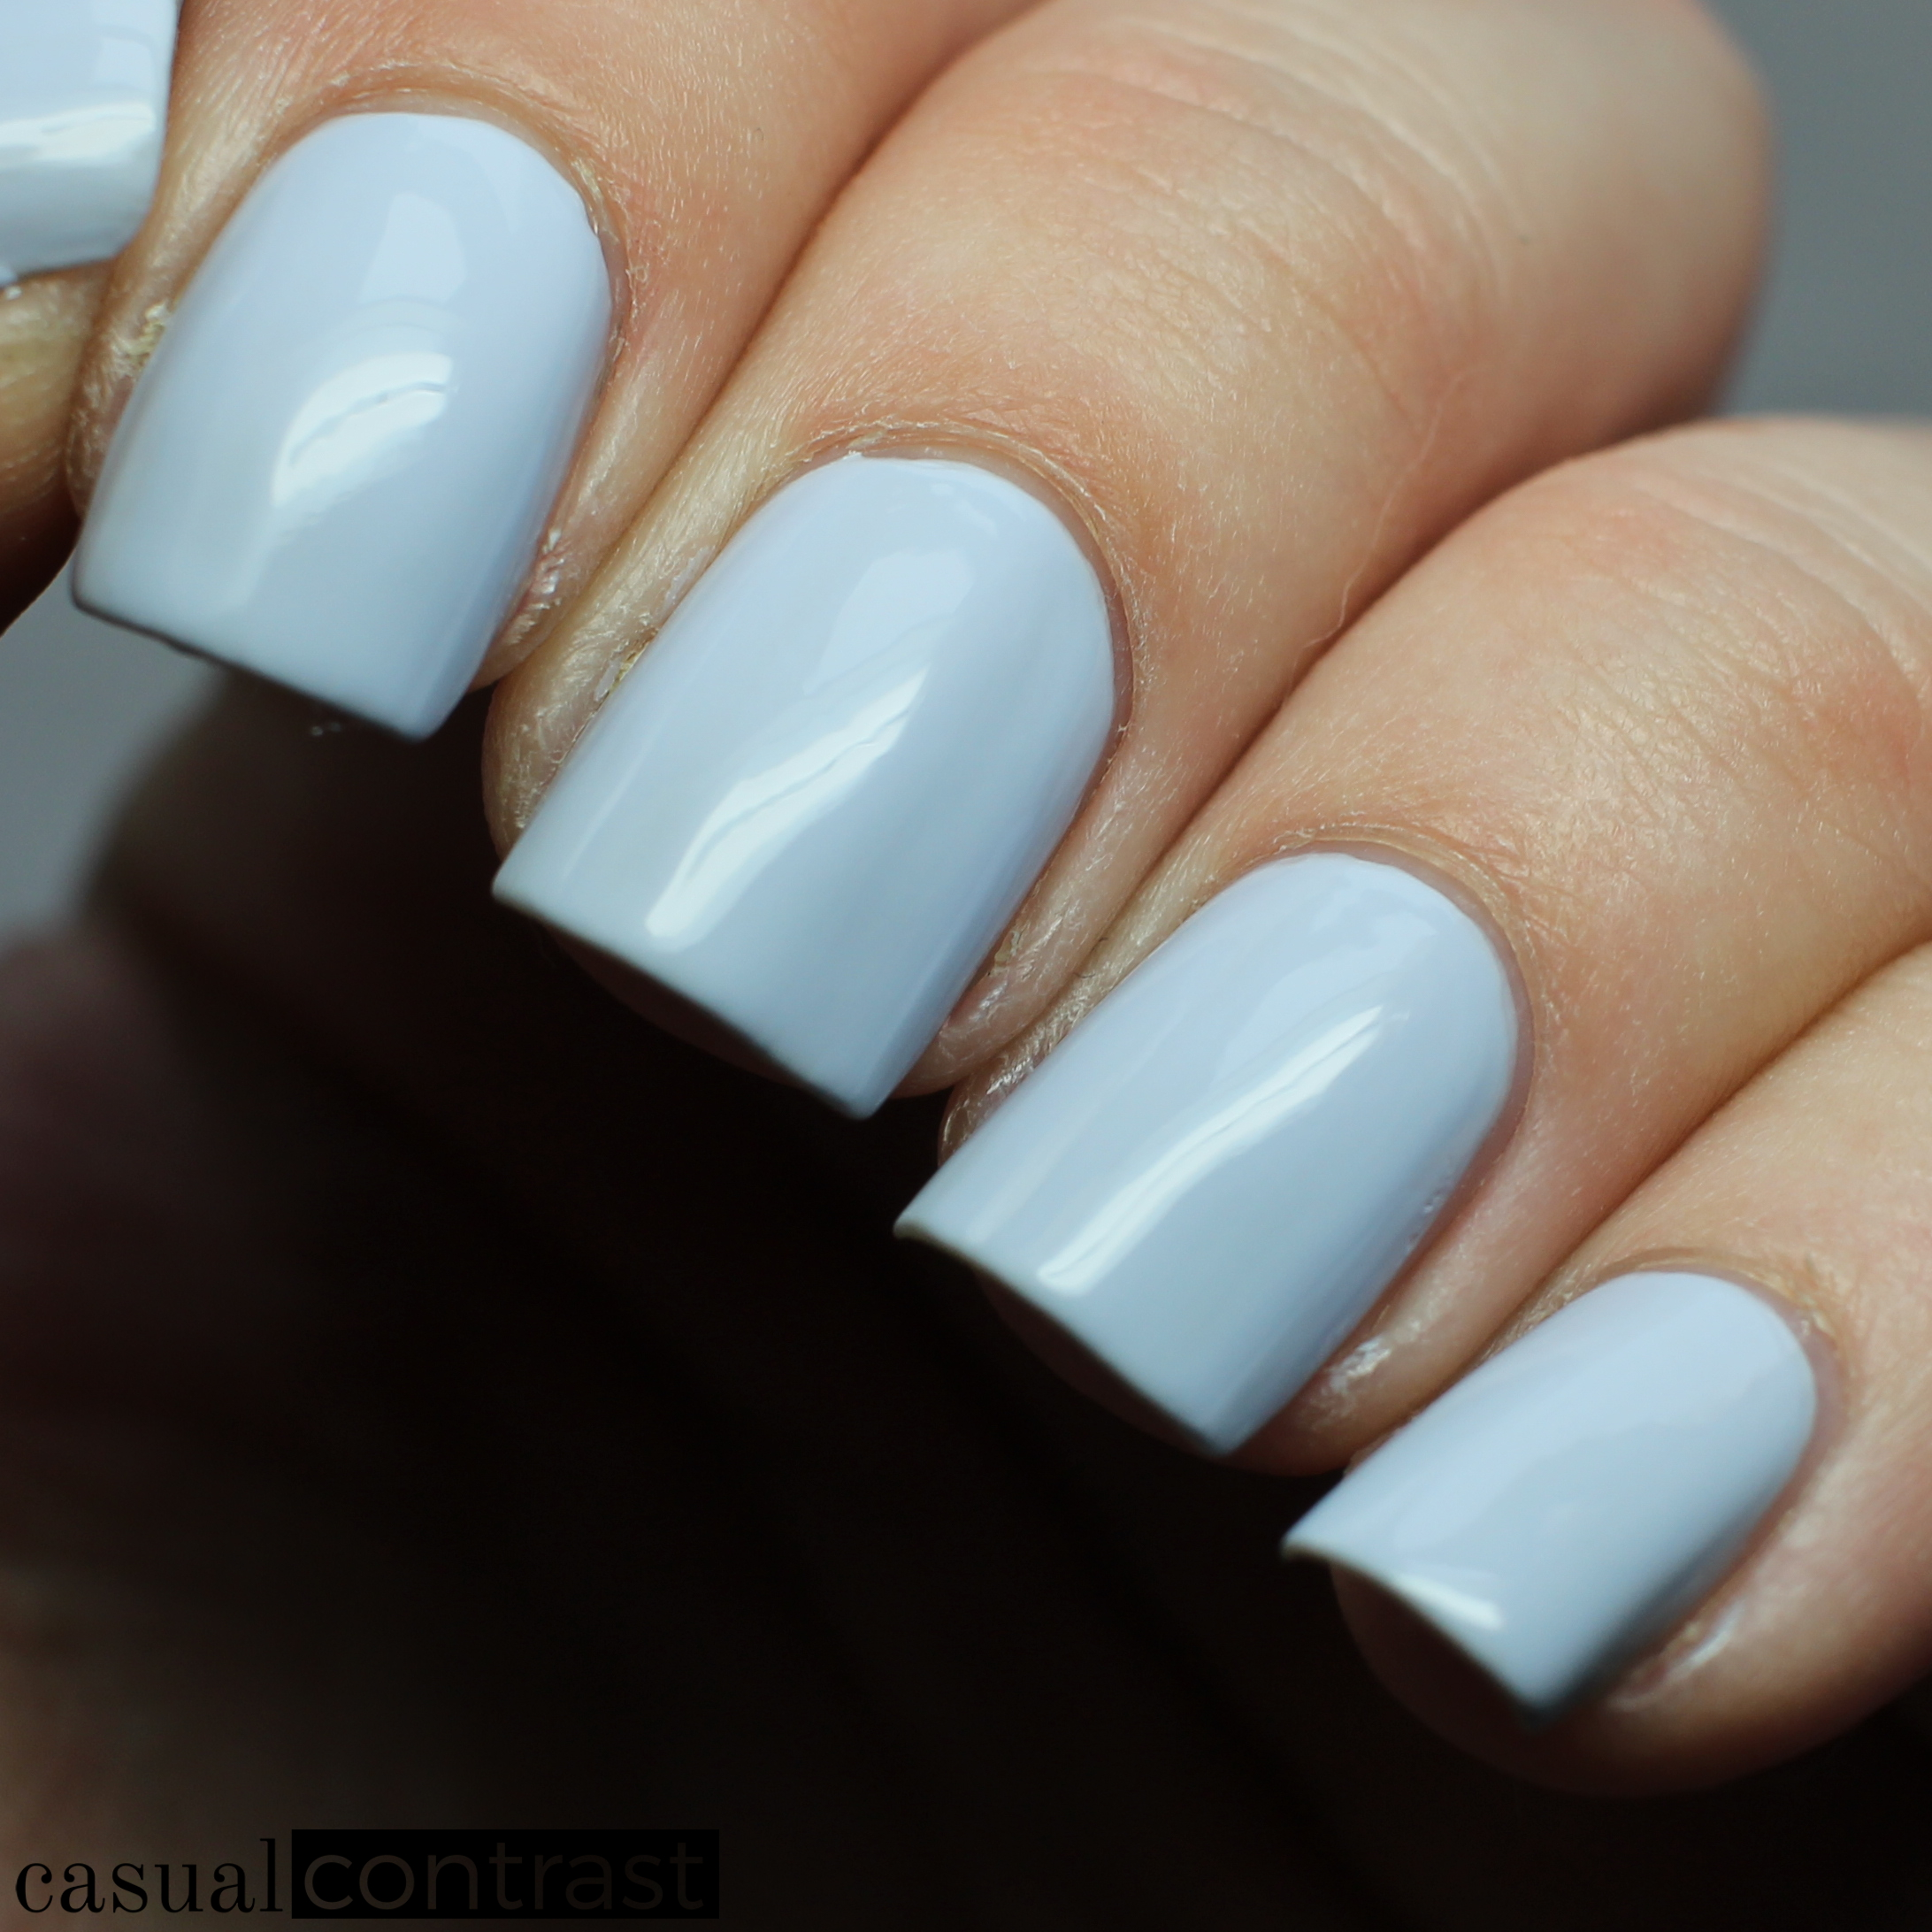 OPI Nail Lacquer, OPI Soft Shades Pastel Collection, This Cost Me A Mint T72 0.5 Fluid Ounce pictures